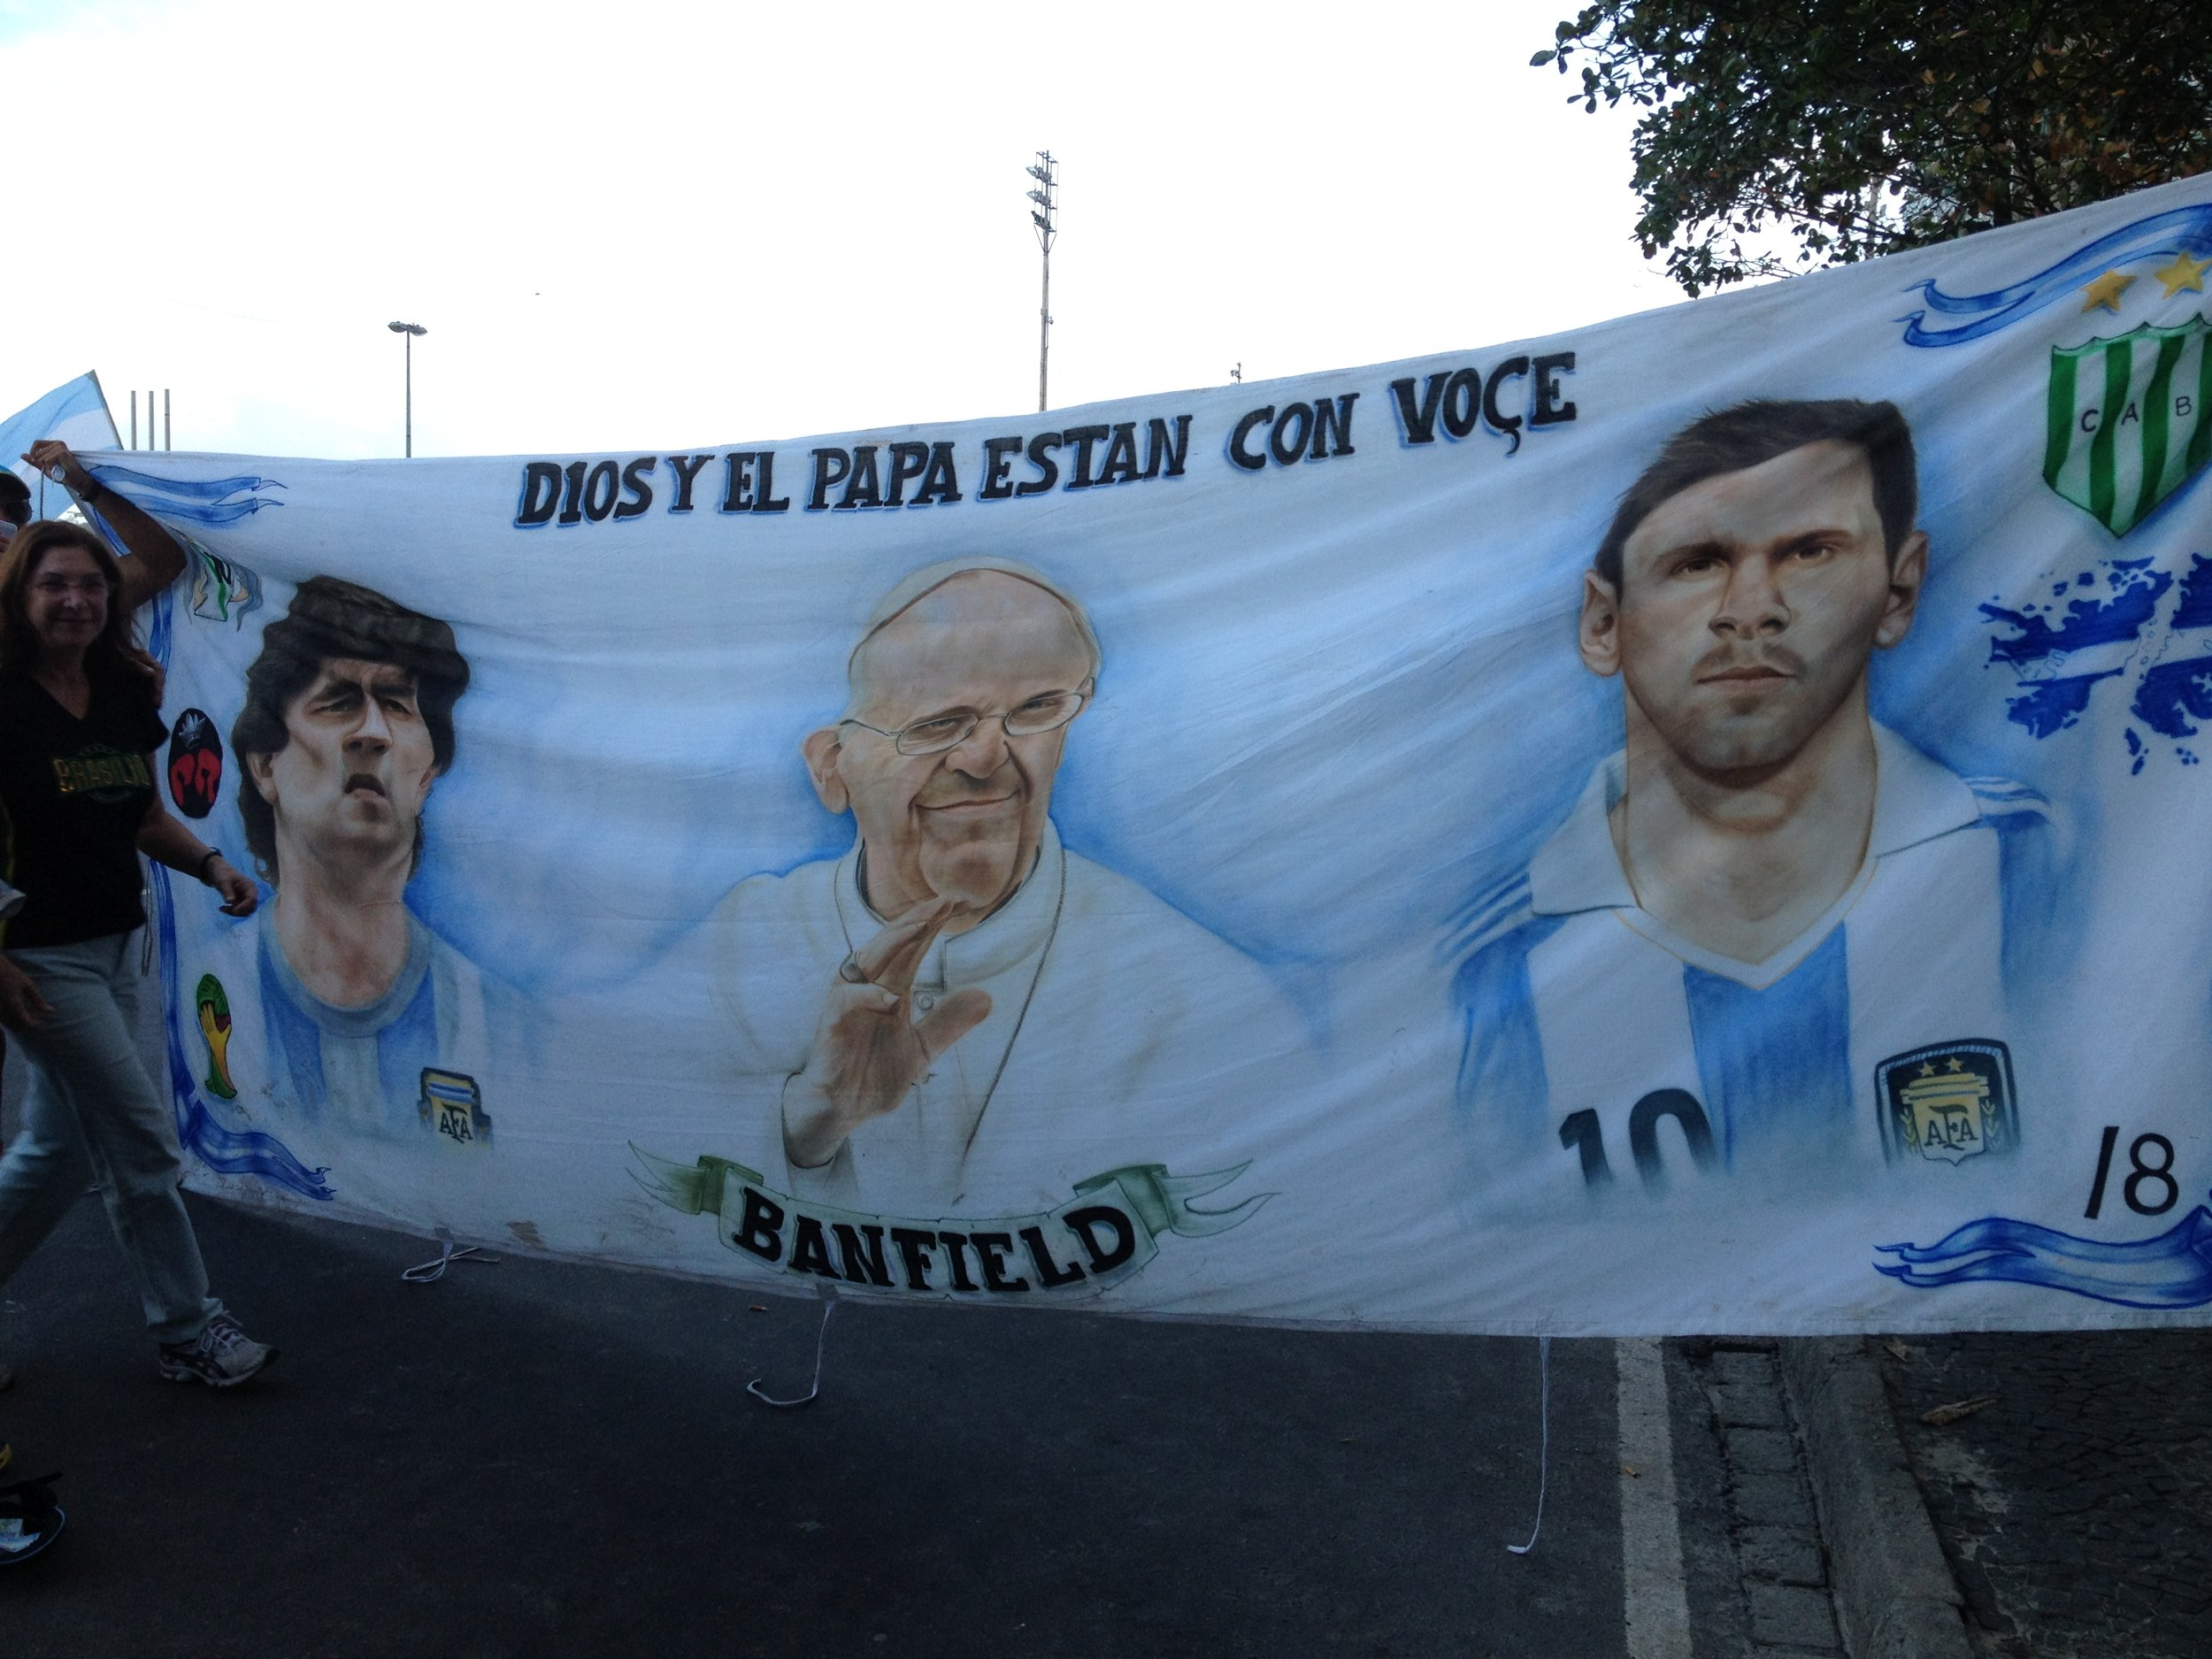 Argentina fans unfurl a banner during the 2014 World Cup featuring three Argentine stars: Pope Francis in the center, flanked by soccer stars Diego Maradona (left) and Lionel Messi (right). Photo by Clemente Lisi.